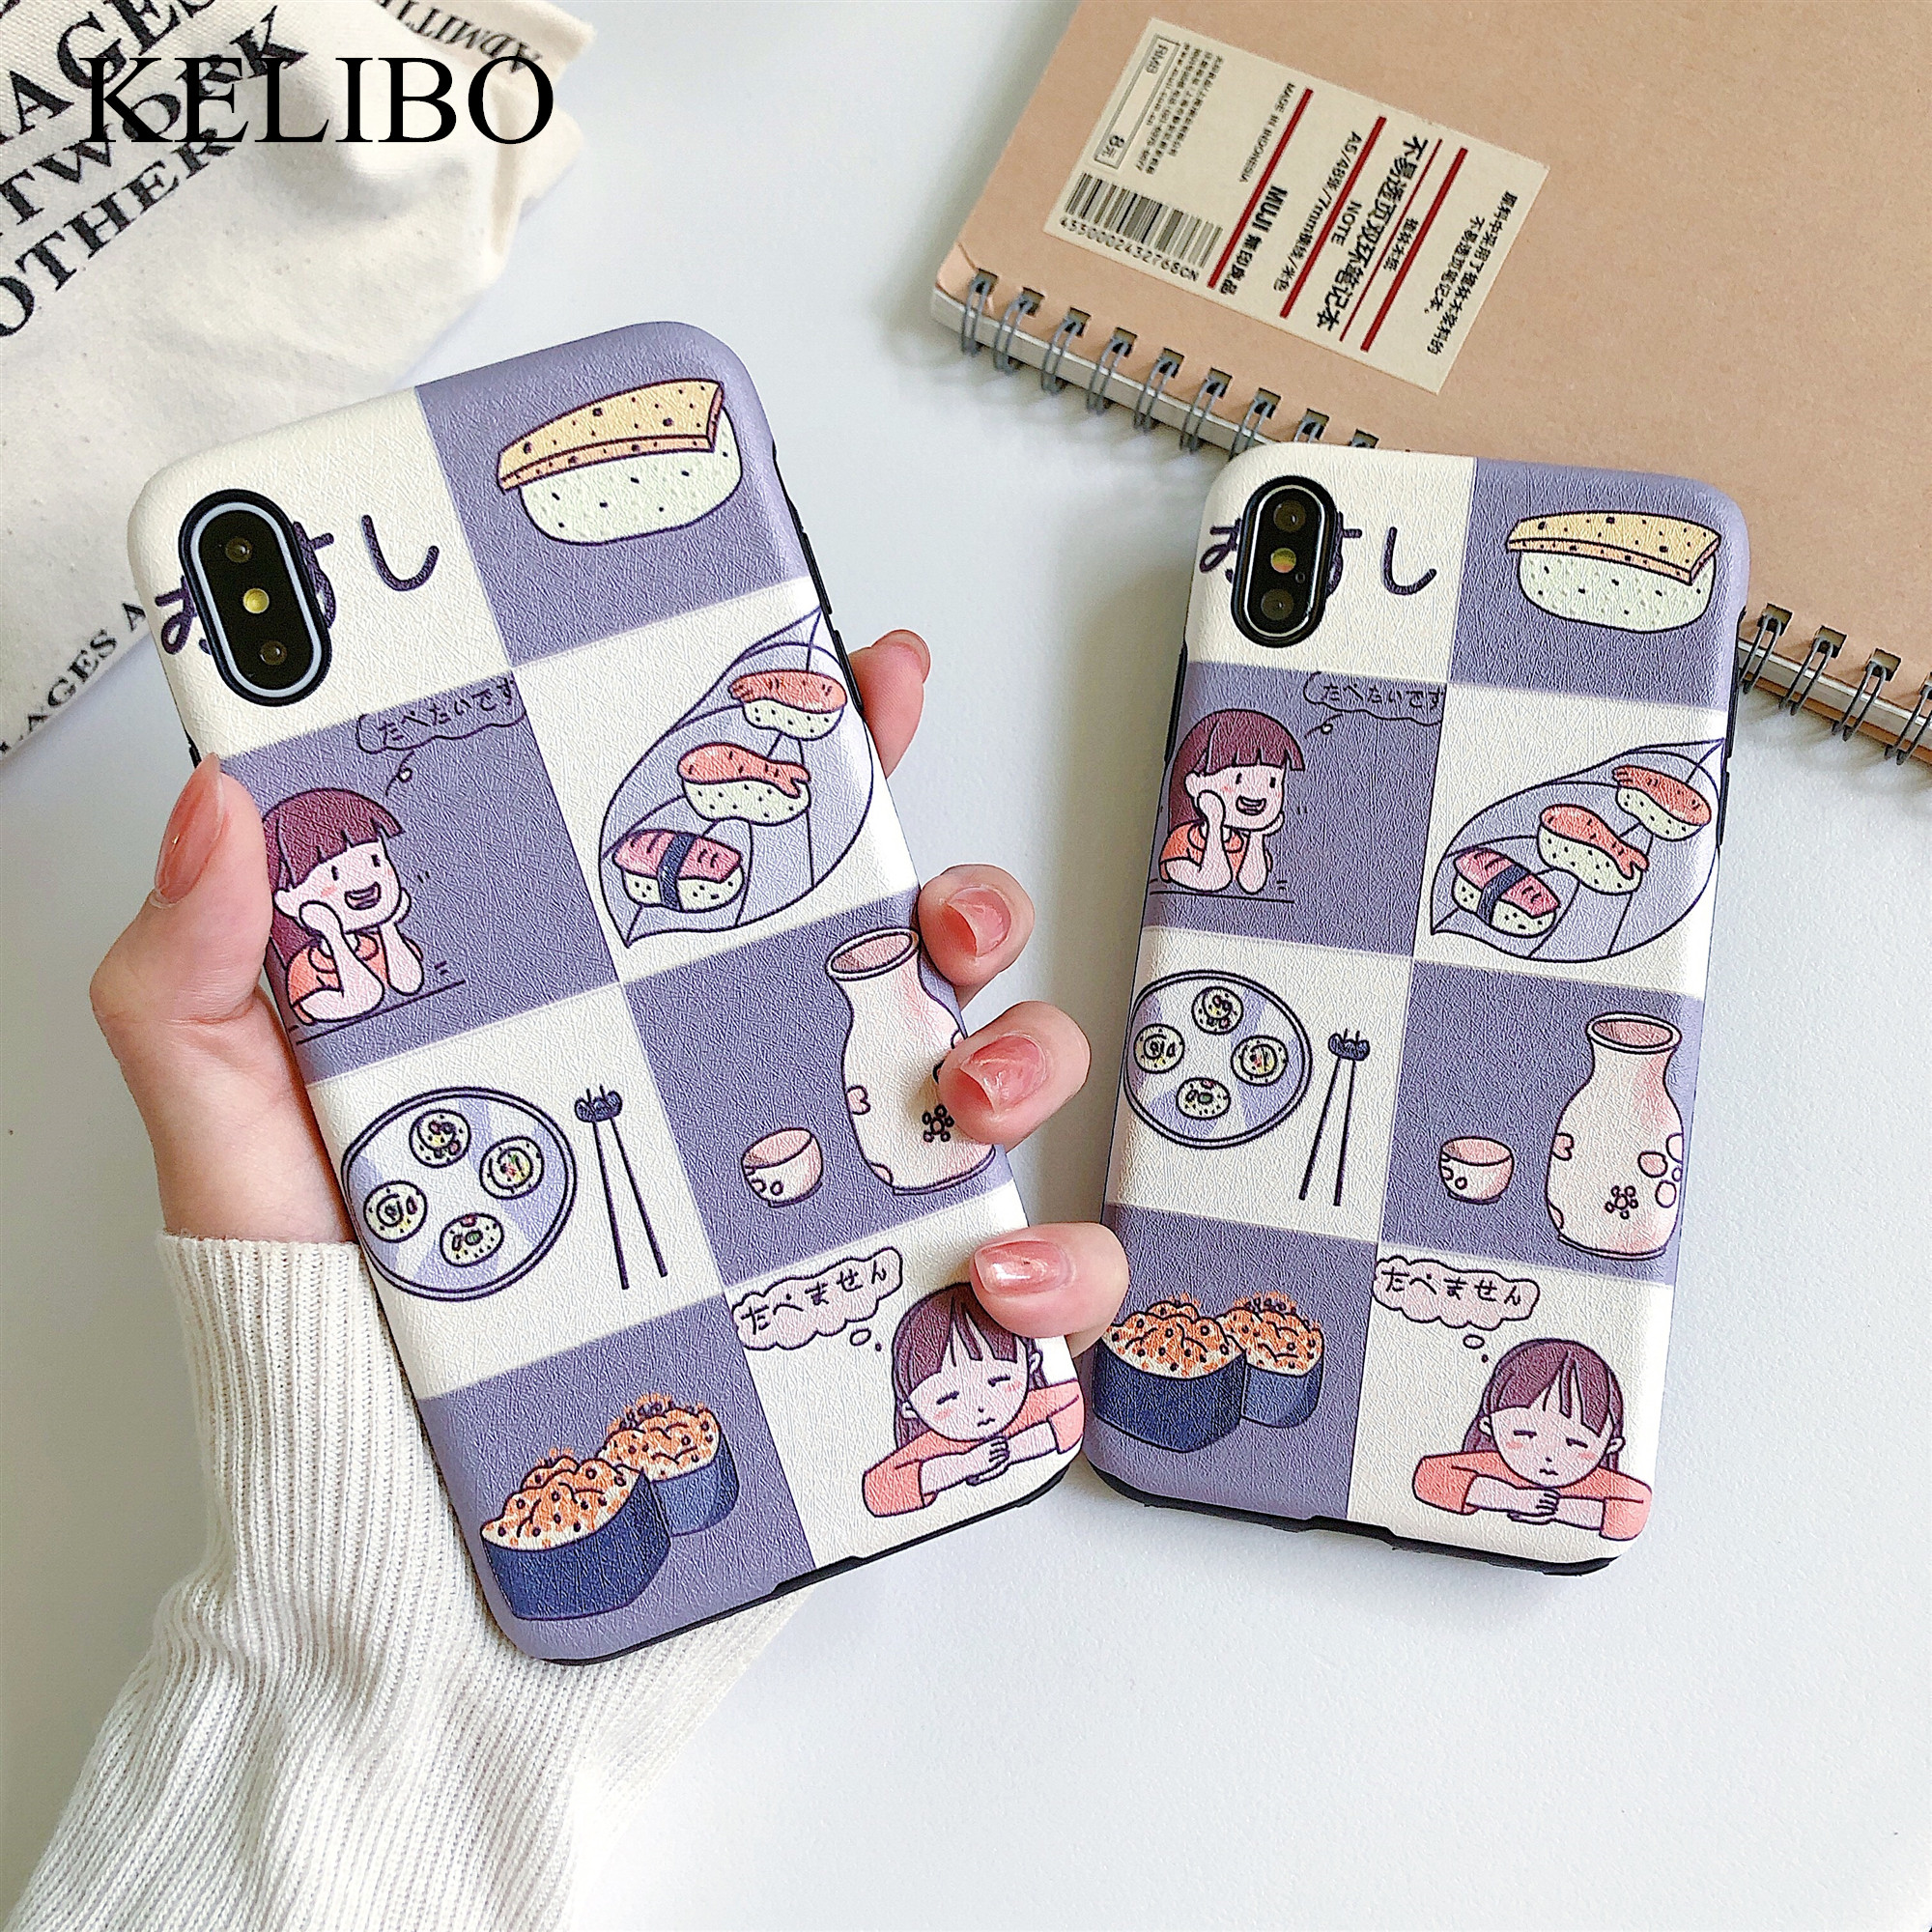 Kawaii Japanese anime illustration Phone Cases For <font><b>iphone</b></font> X XS Max XR Case <font><b>bts</b></font> Relief Cover For <font><b>iPhone</b></font> <font><b>6</b></font> 6s 7 8 Plus Fundas Capa image